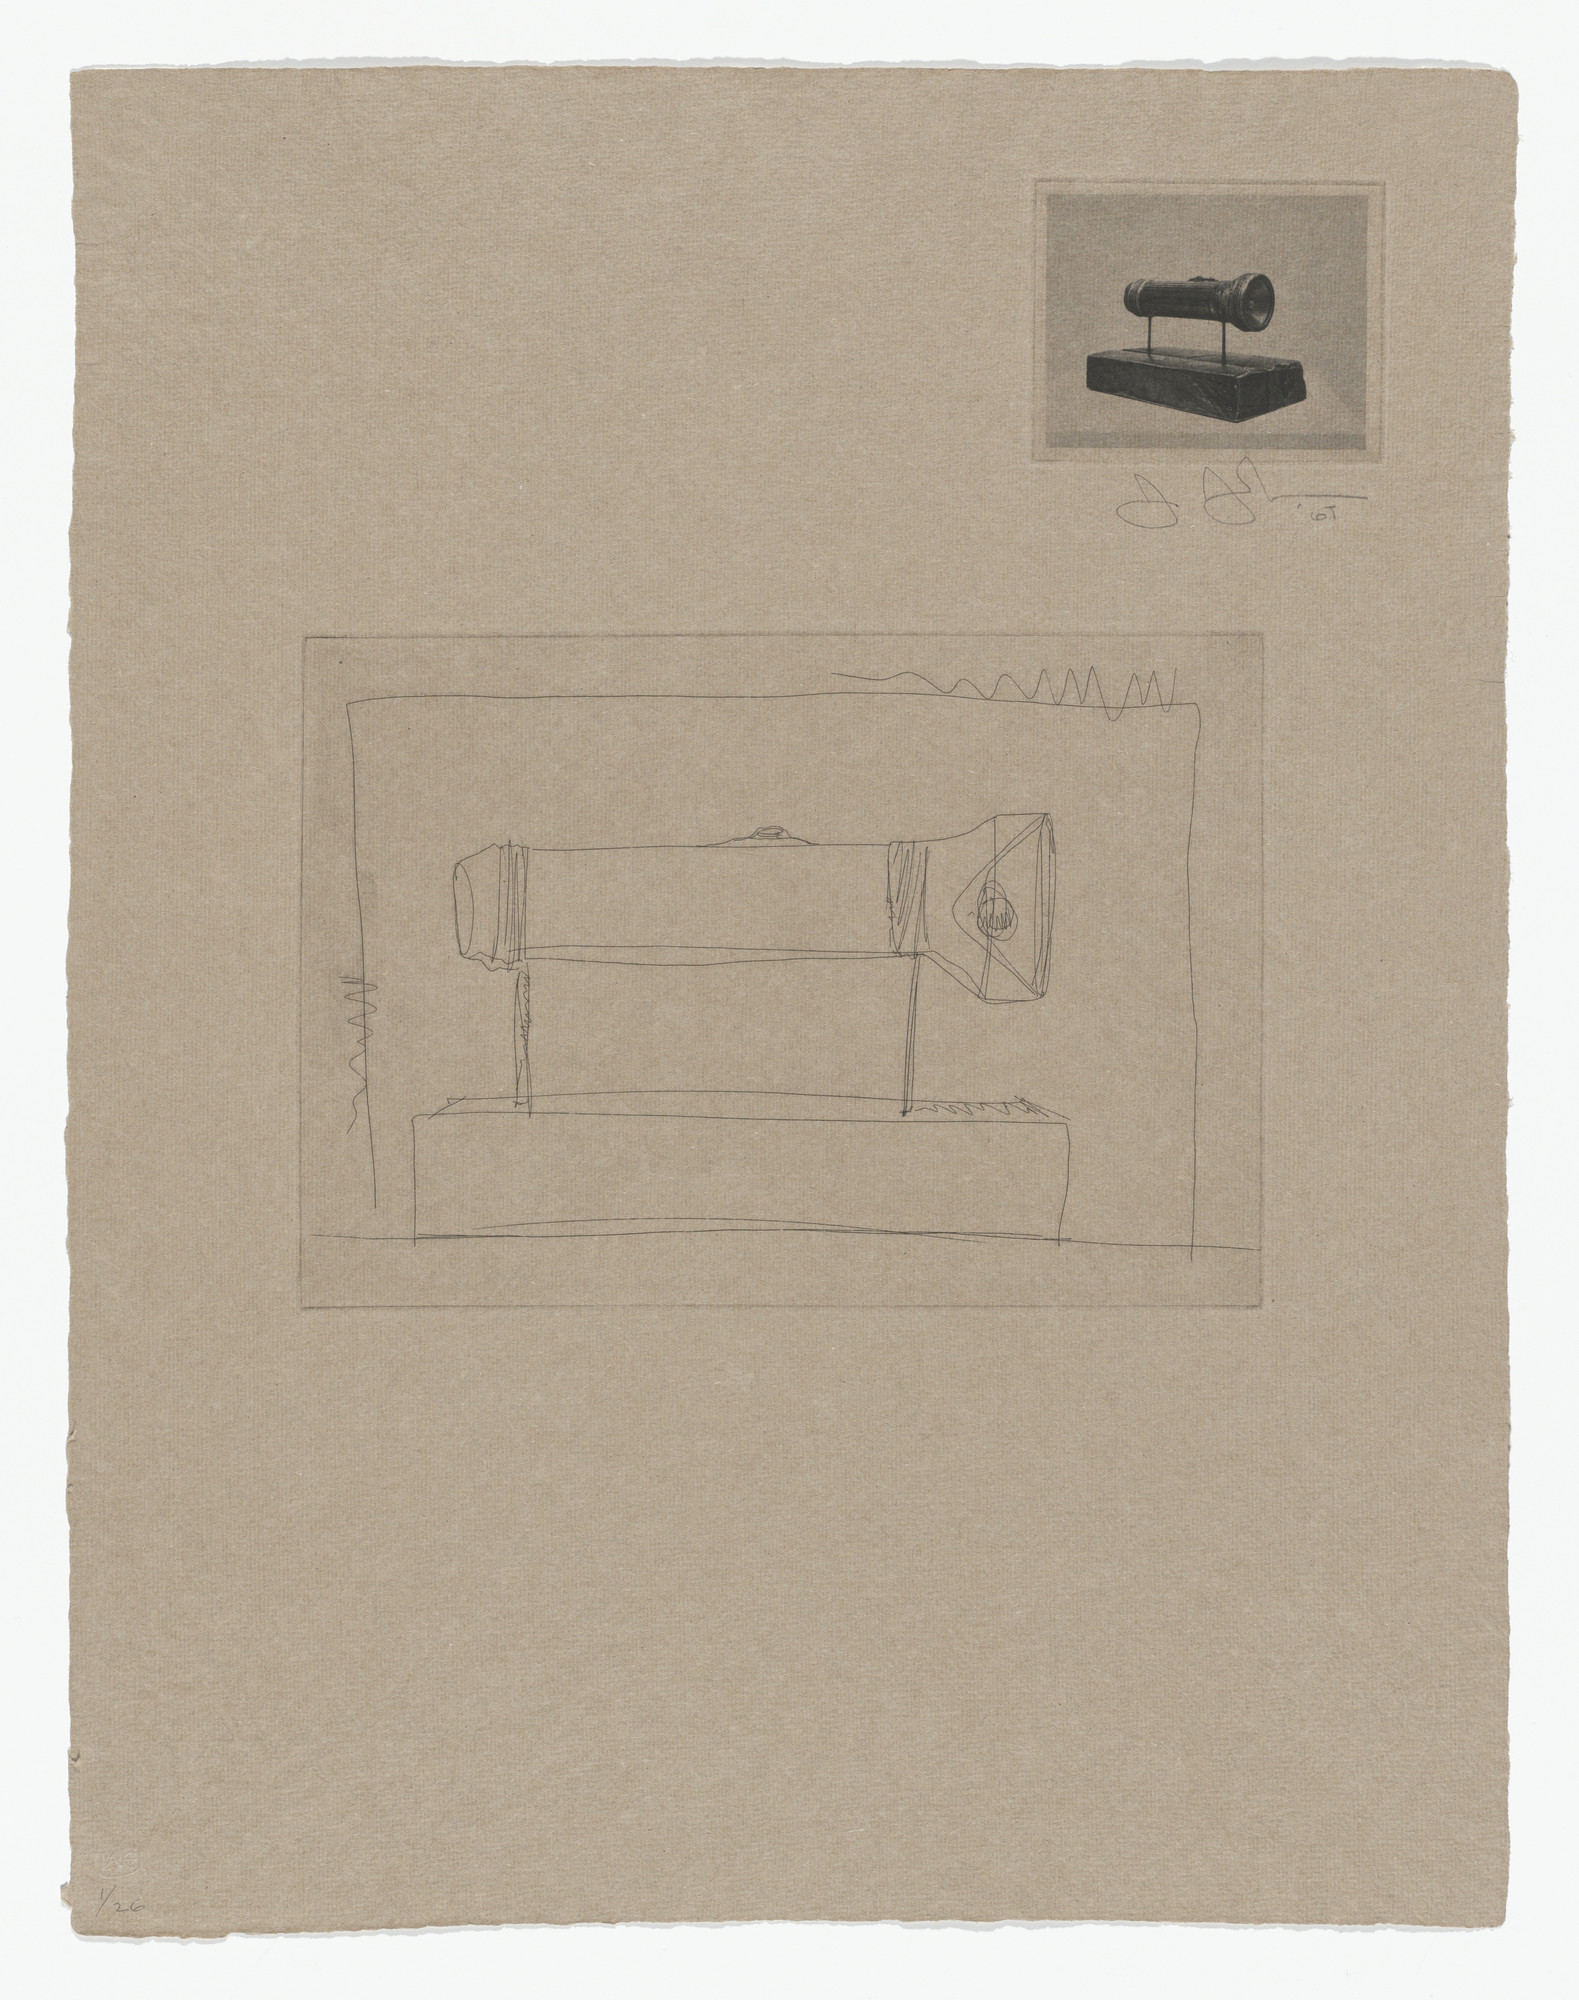 Jasper Johns. Flashlight from 1st Etchings. 1967